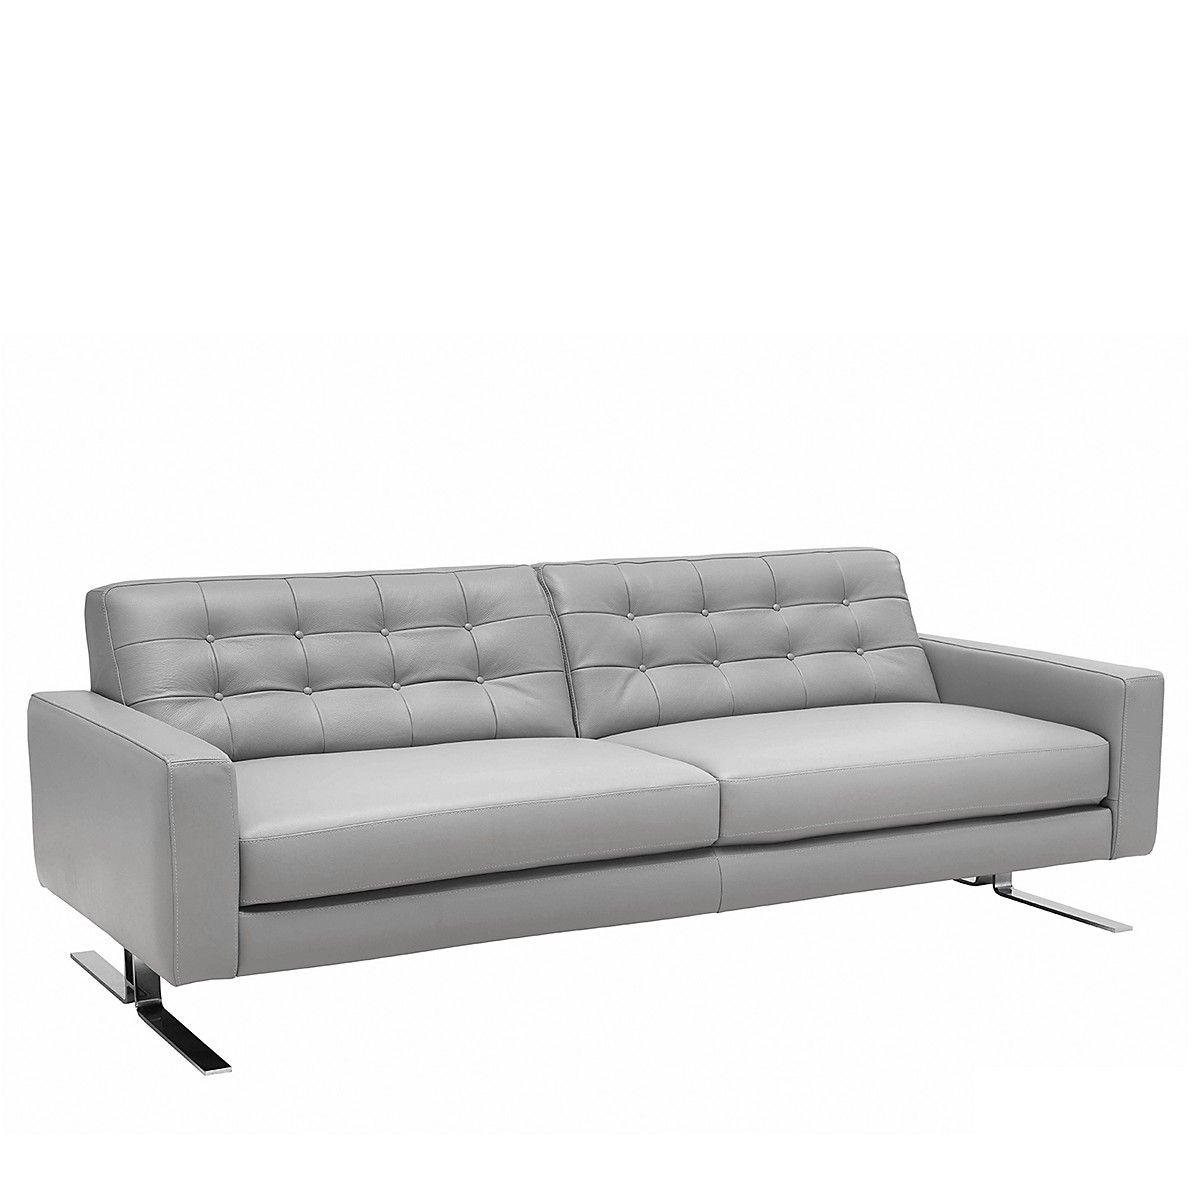 Divani chateau d ax leather sofa - Chateau D Ax Positano Sofa Bloomingdale S Sale Price 2352 Msg Ronnie 248 470